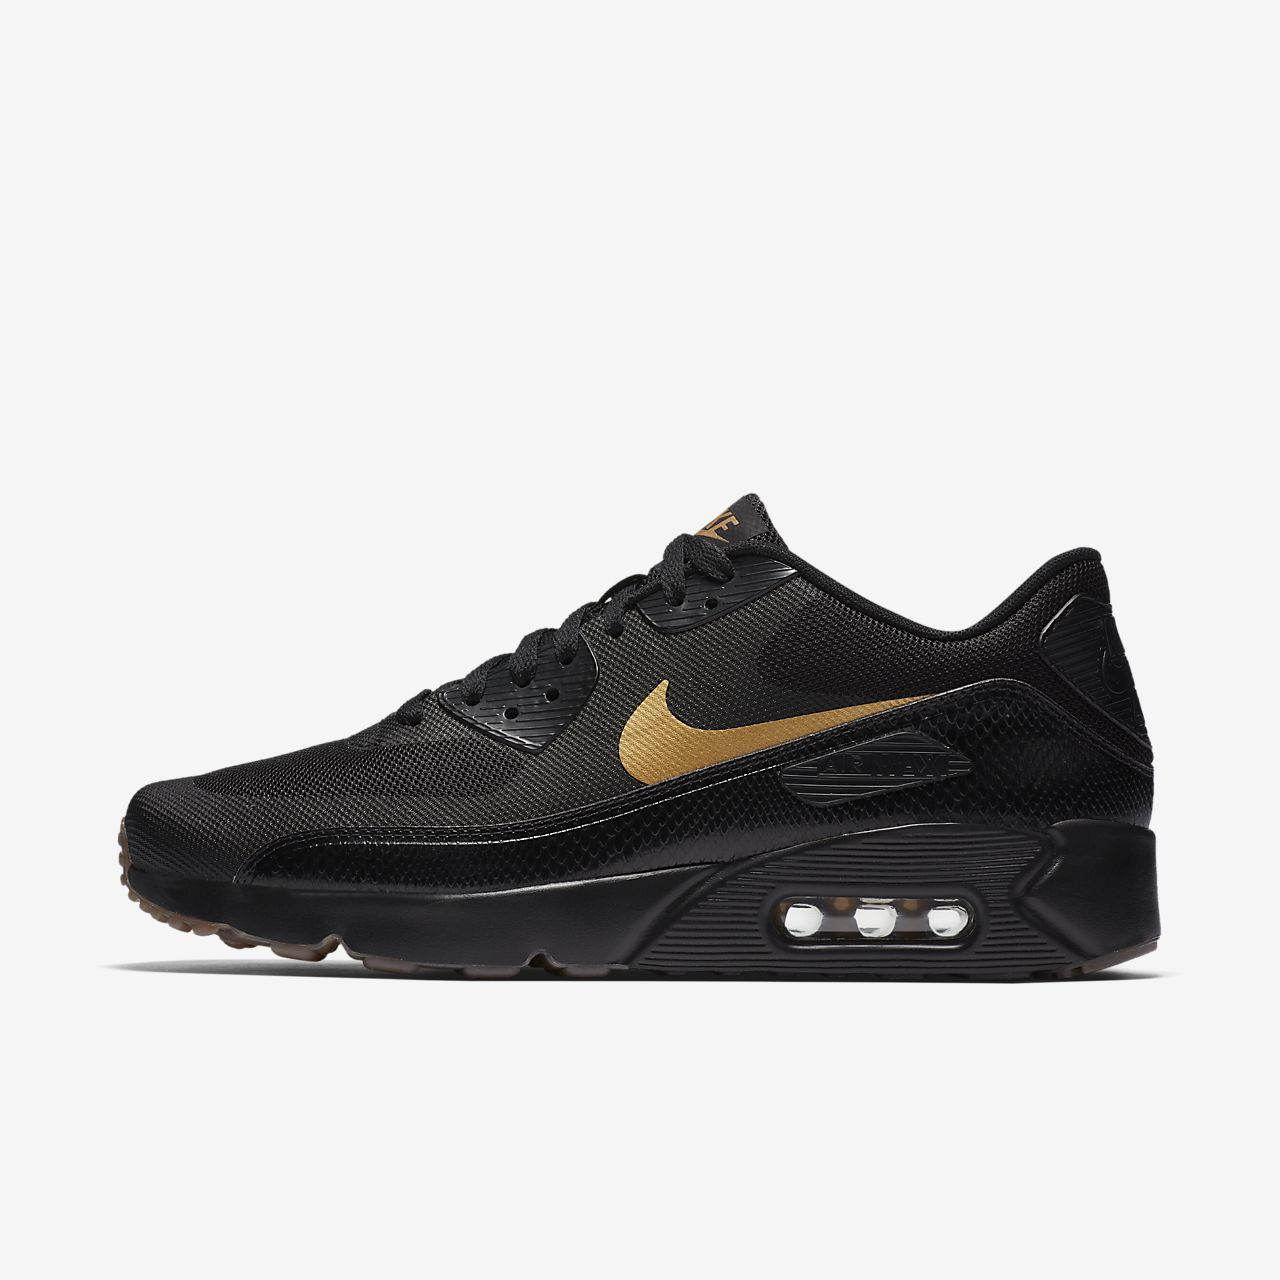 AIR MAX 90 ULTRA 2.0 ESSENTIAL Nike hbtVElLrc